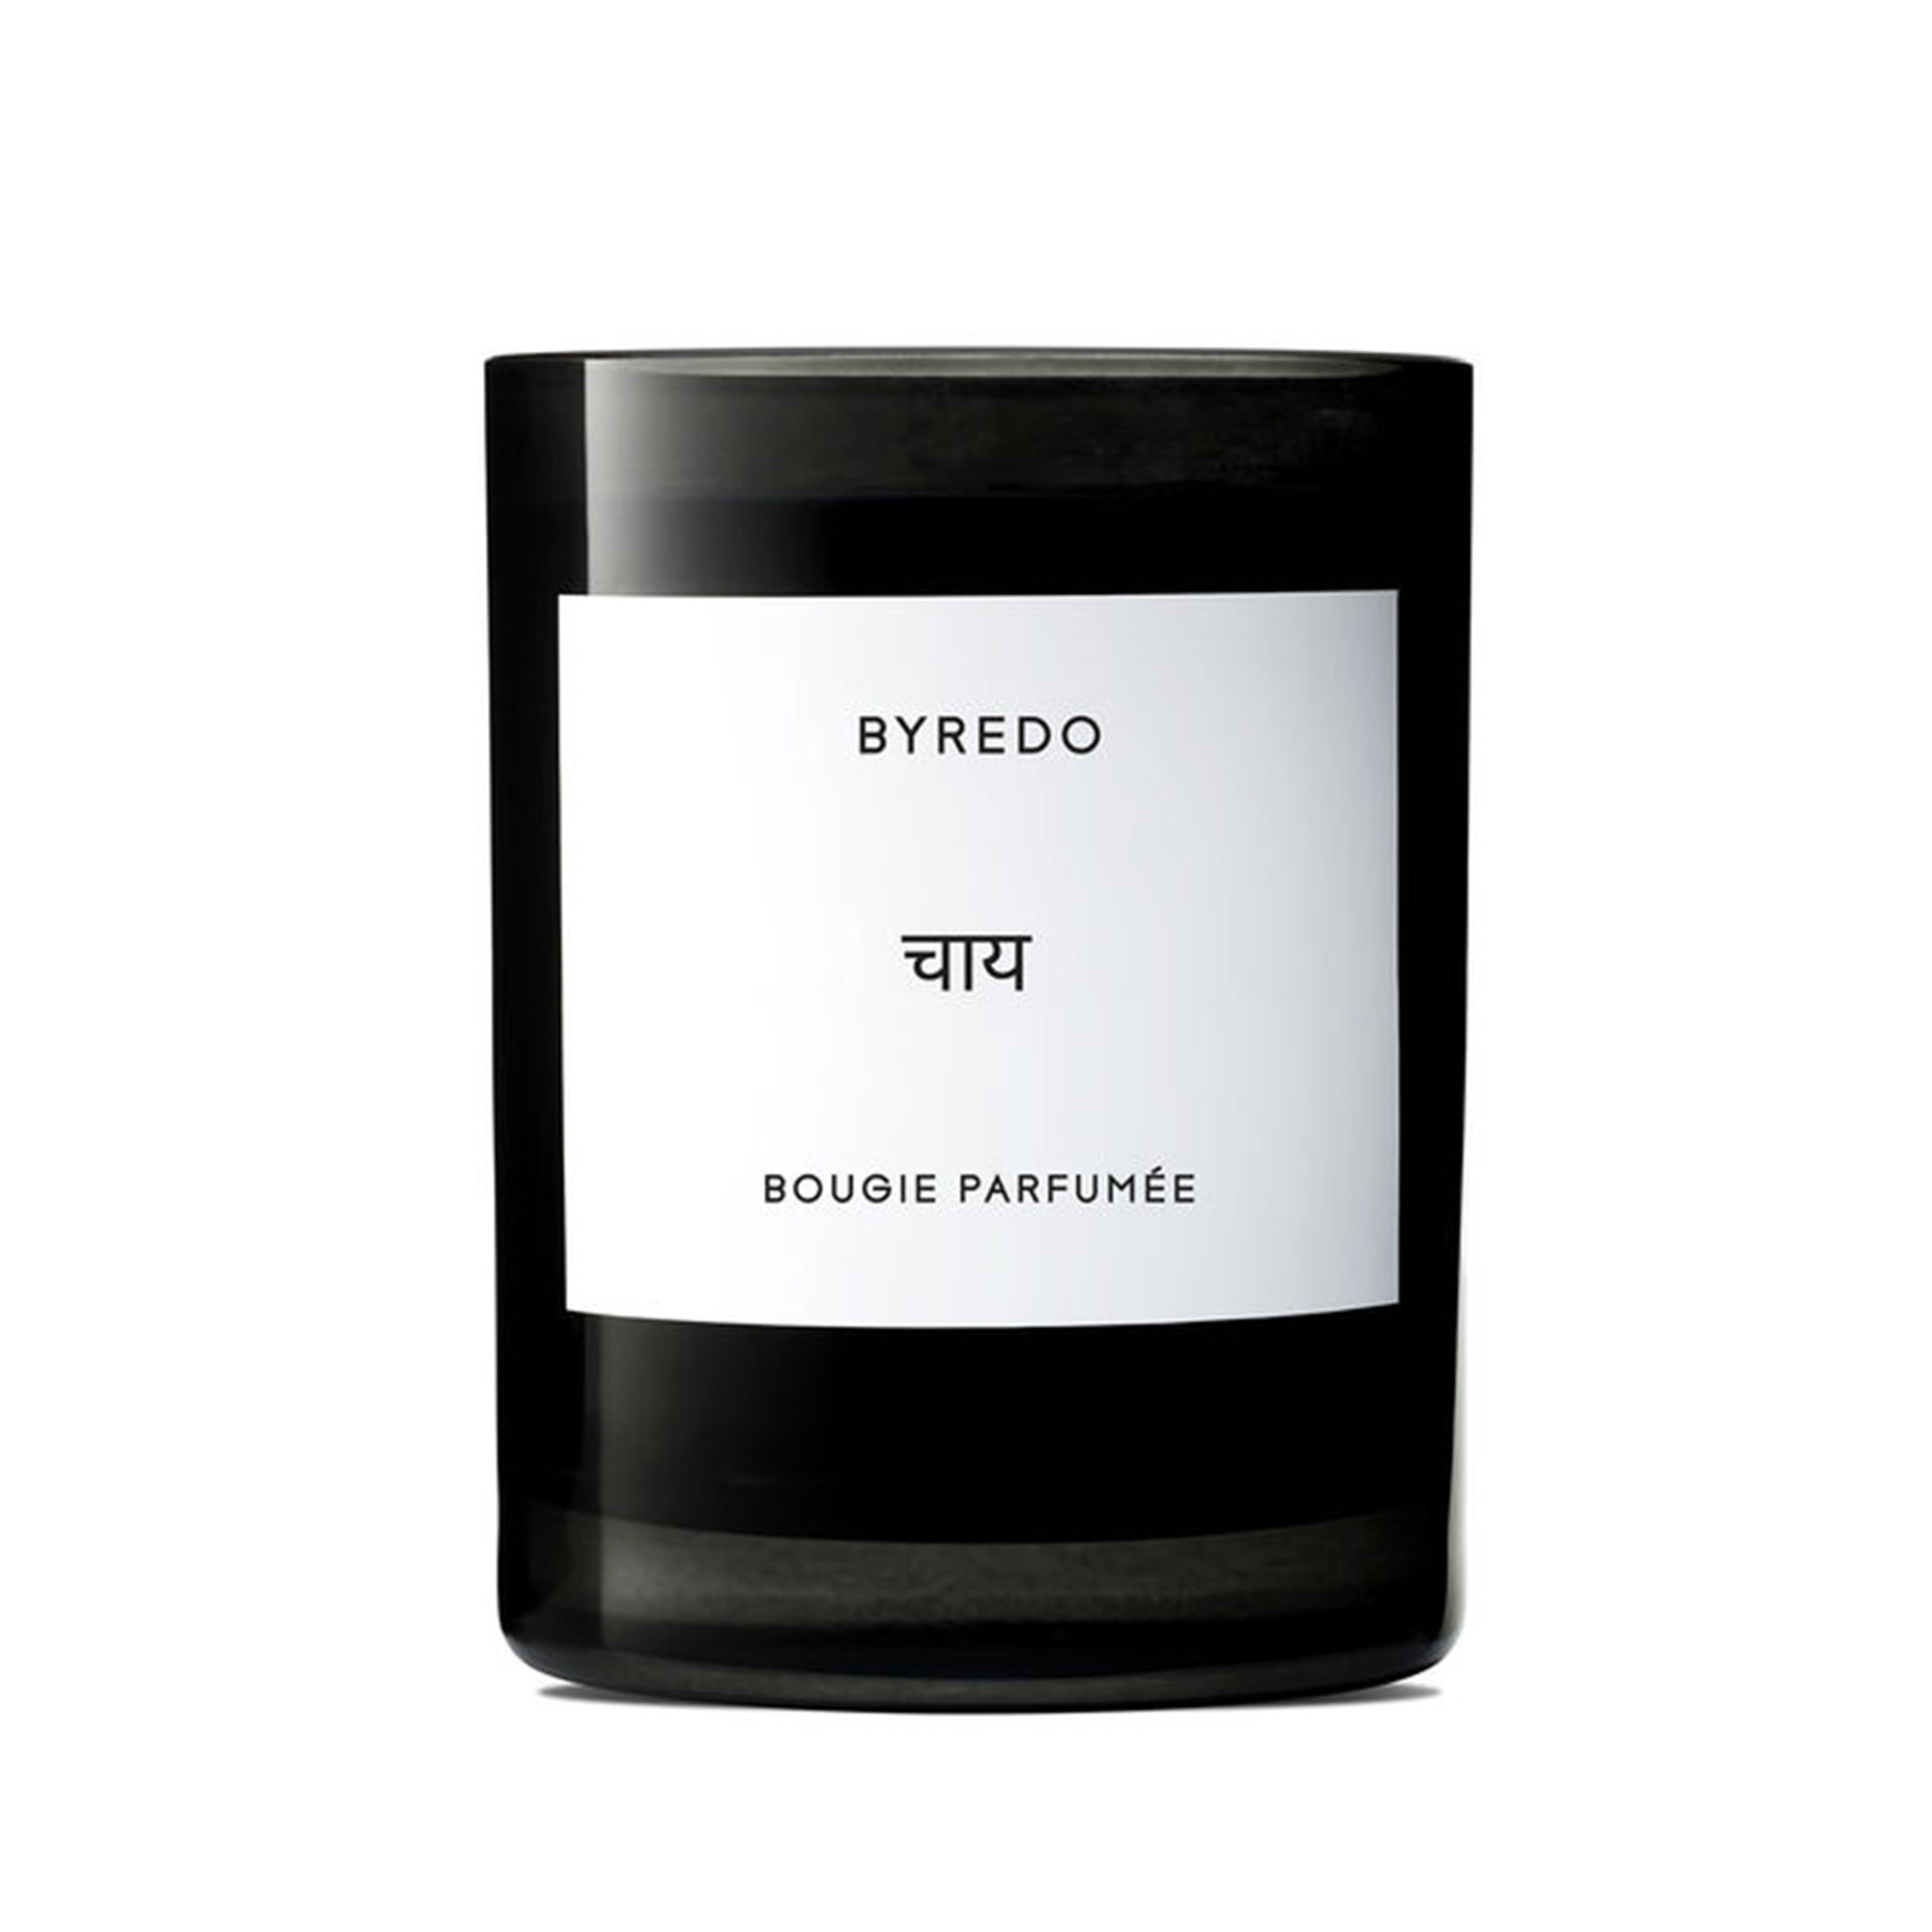 Byredo Chai Candle - Inspired by an Indian tea ritual, this latte-like aroma is equal parts sweet and spicy thanks to violet, clove, cardamom and incense. $85, spacenk.com